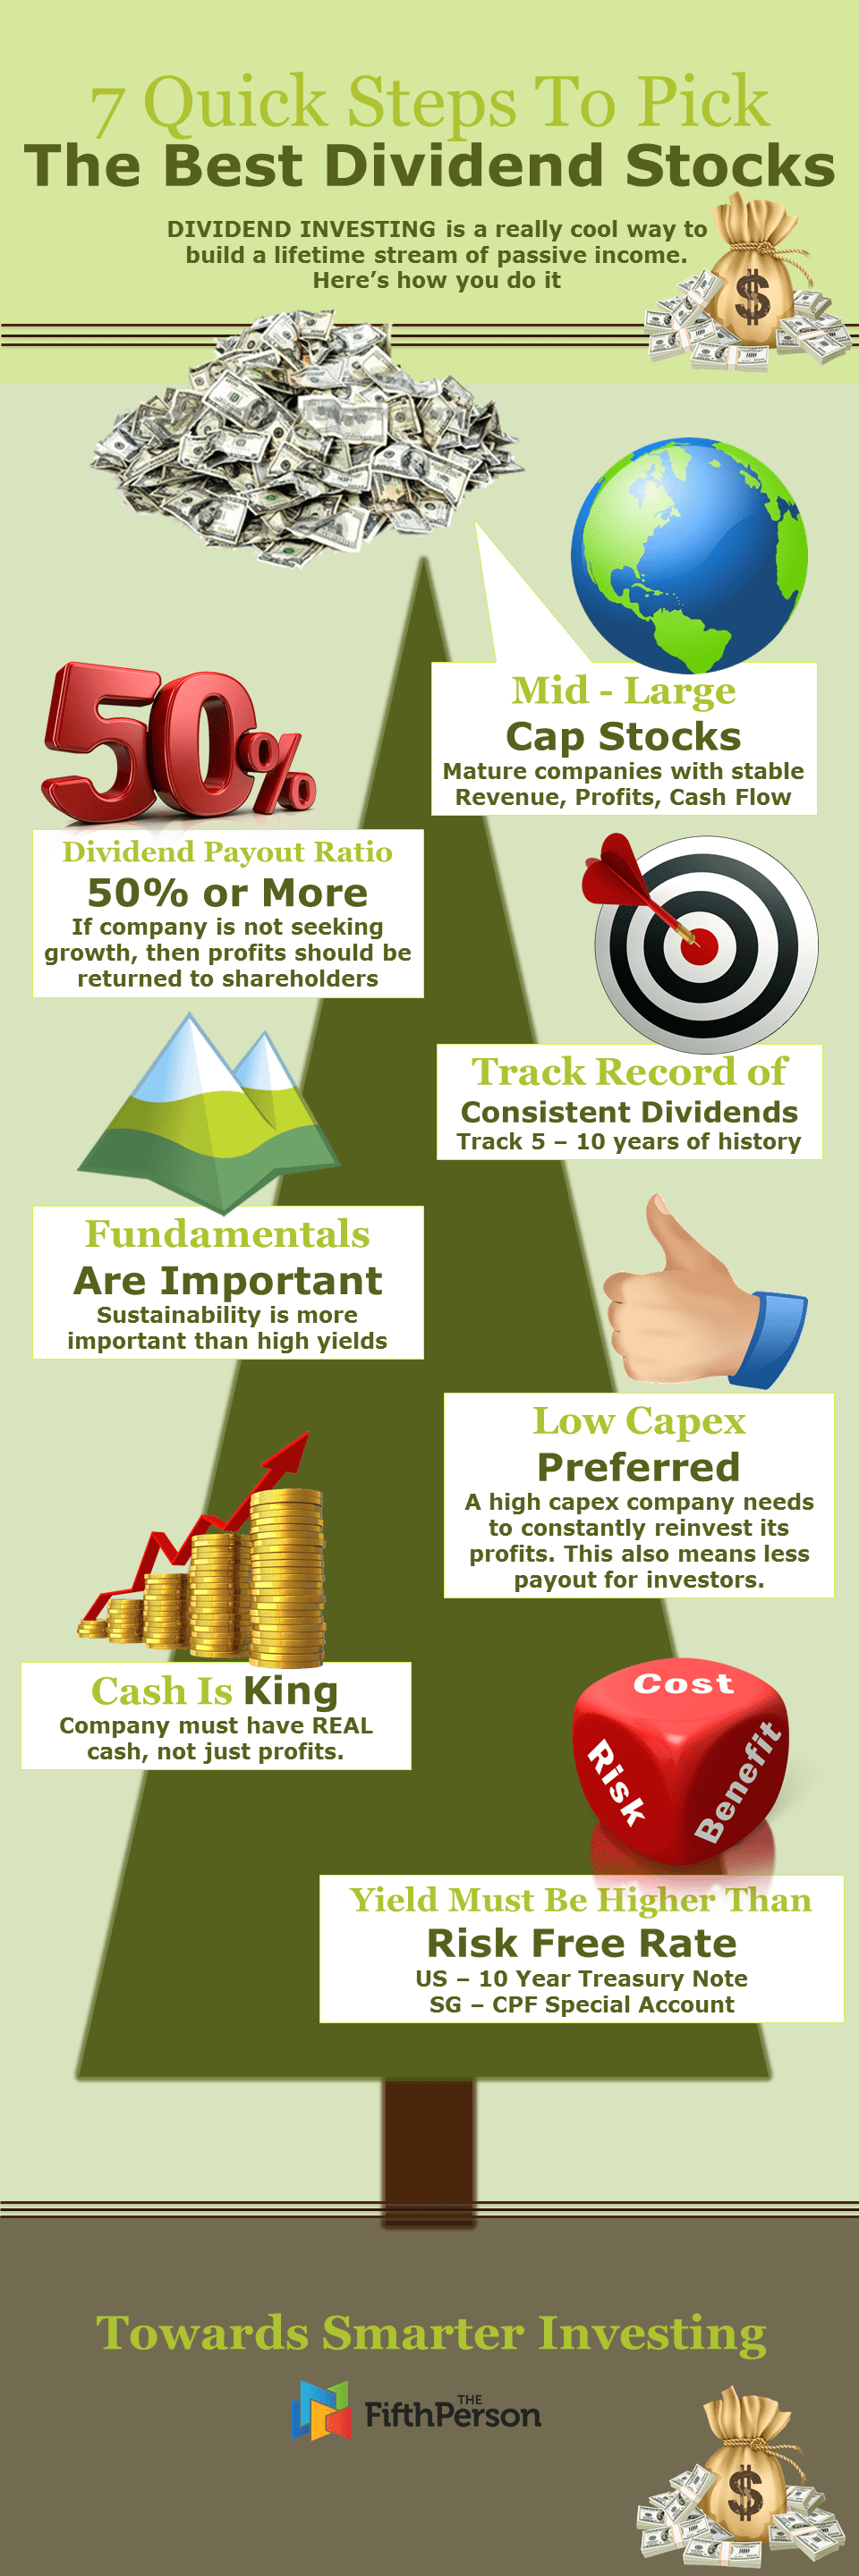 Photo of [INFOGRAPHIC] 7 Quick Steps to Pick the Best Dividend Stocks